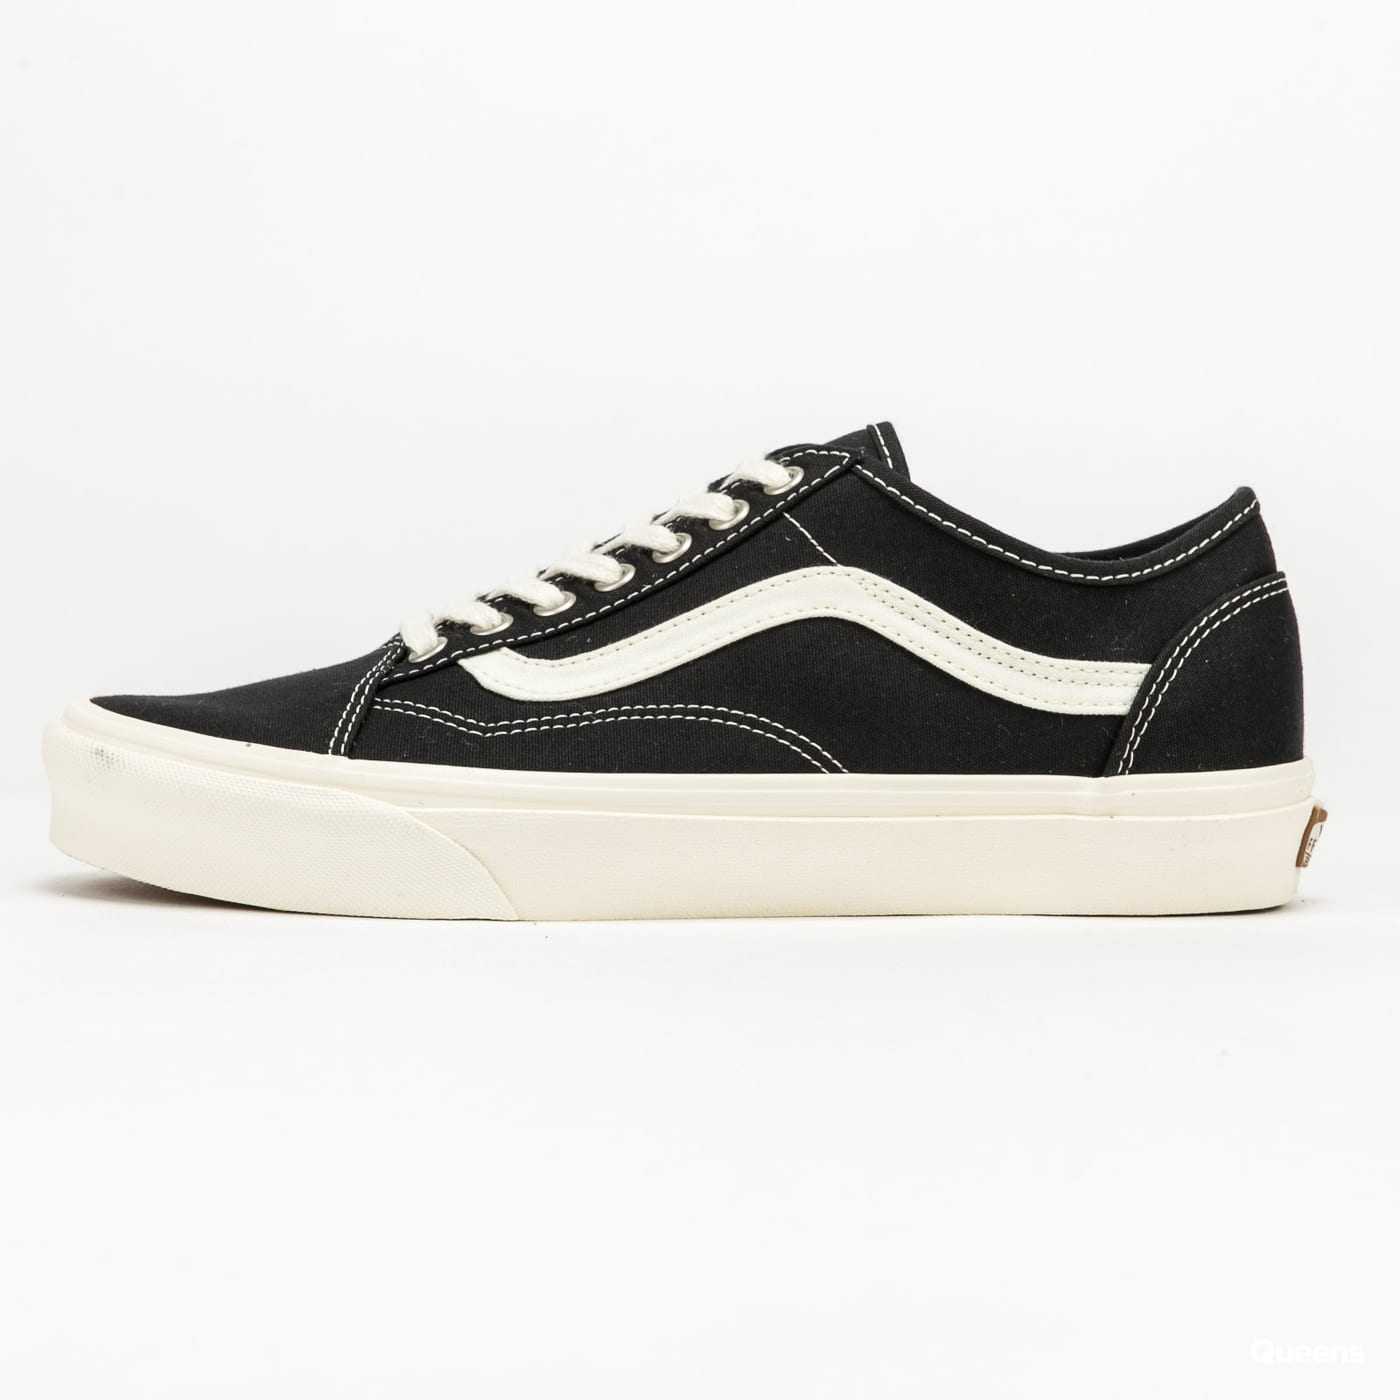 Vans Old Skool Tapered (eco theory) blk / natural